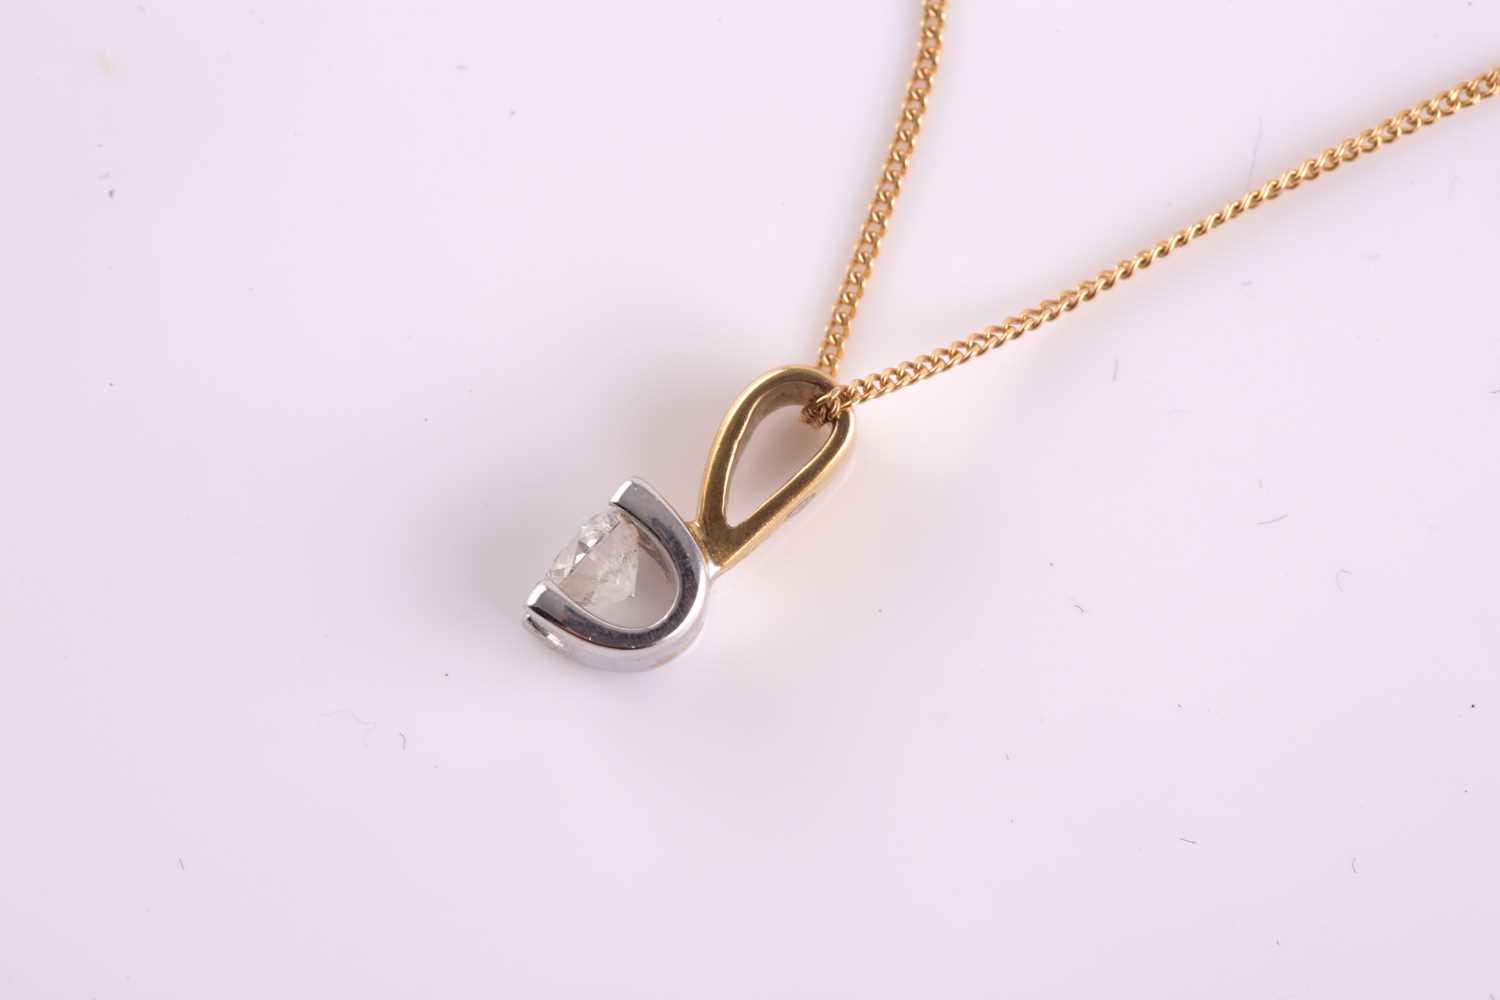 An 18ct yellow gold and solitaire diamond pendant, set with a round brilliant-cut stone of - Image 3 of 5